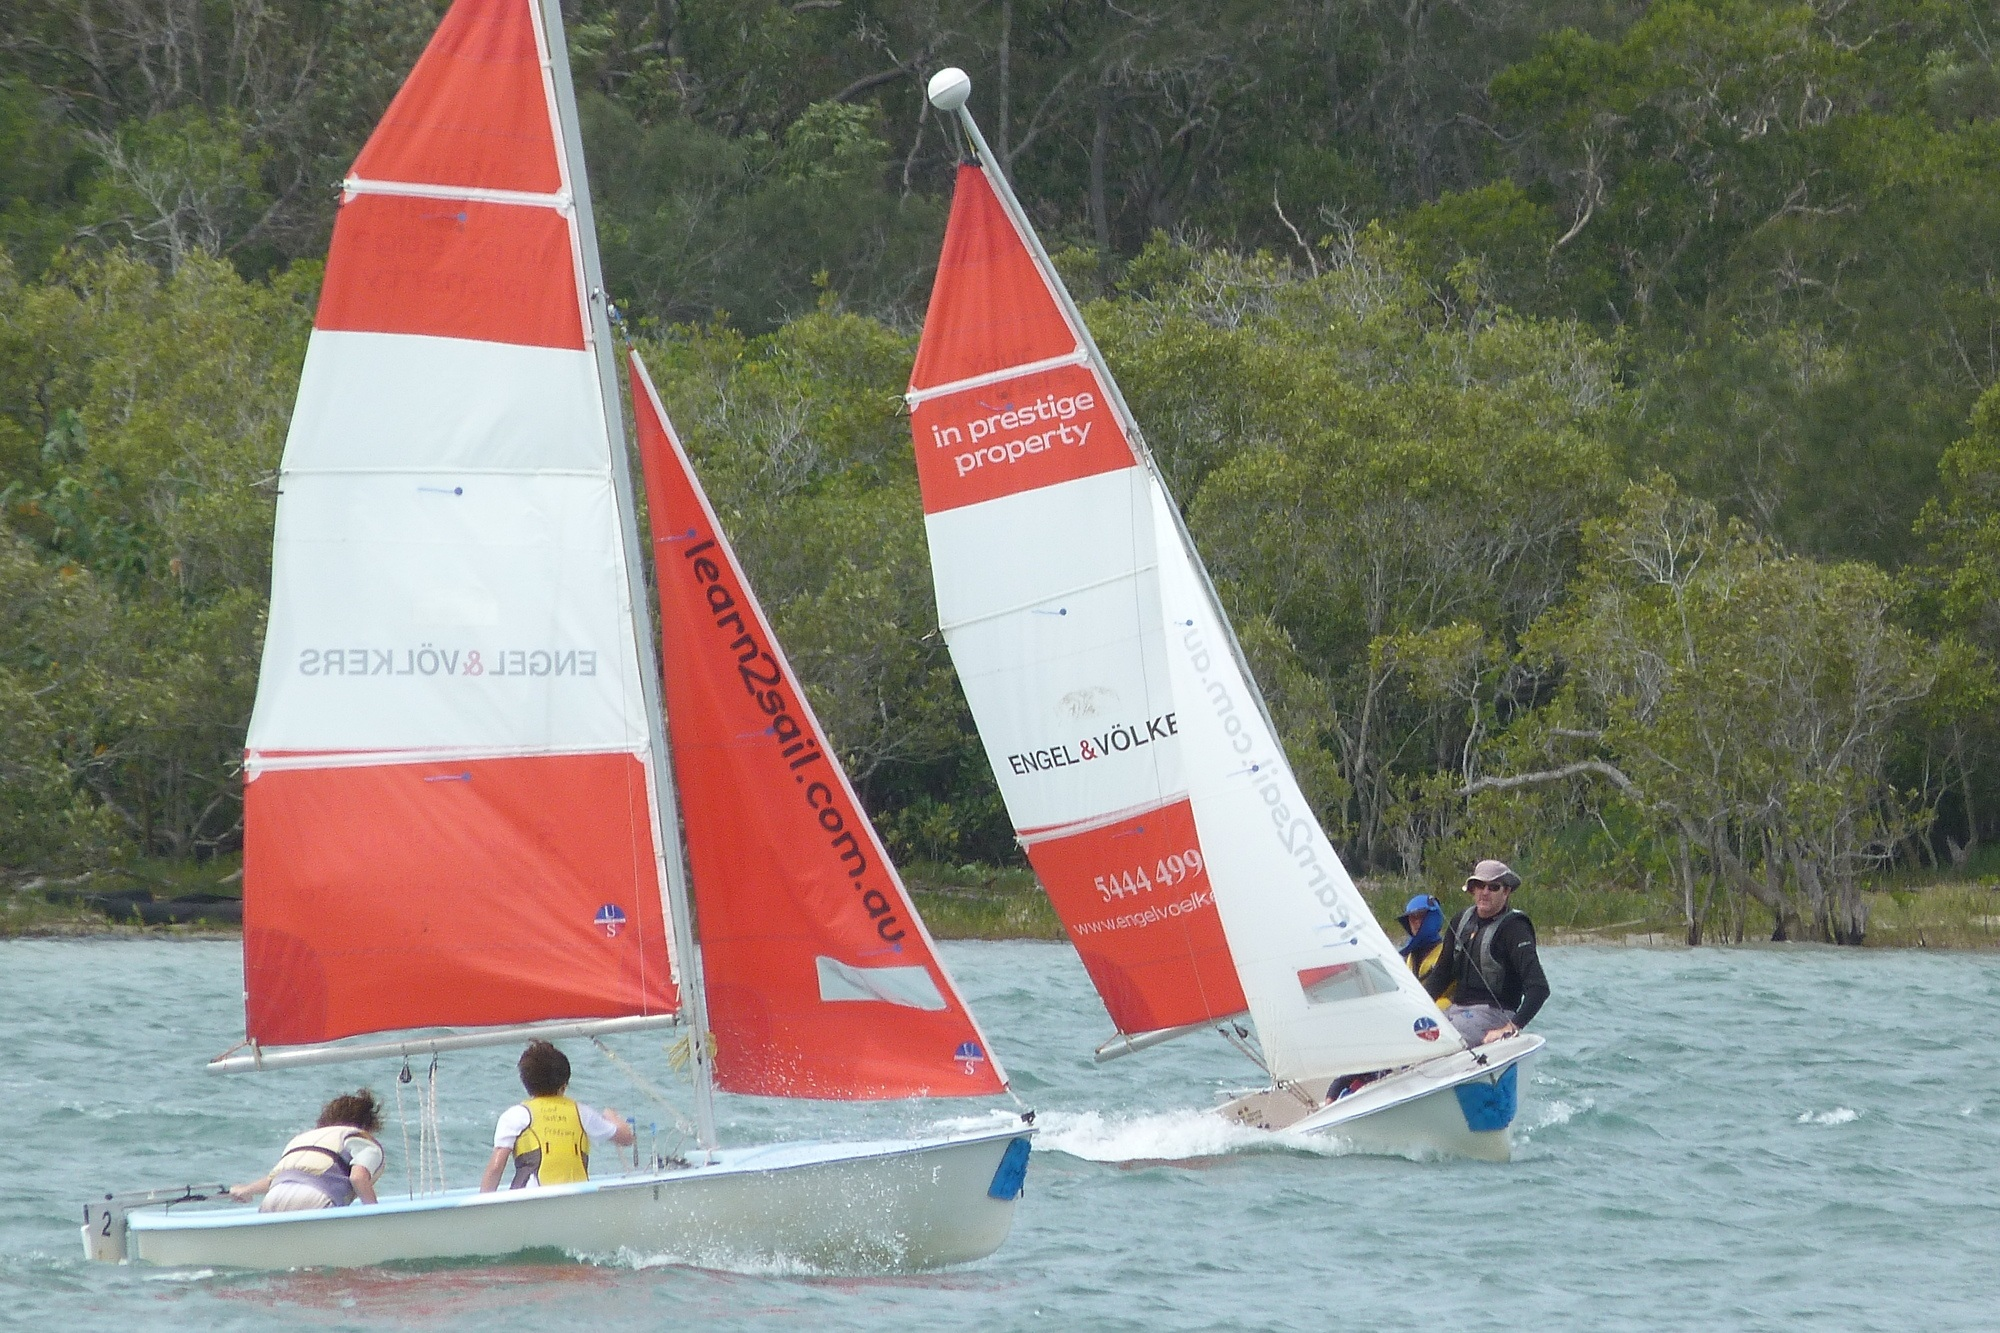 Sunshine Sailing - Kids learn to sail